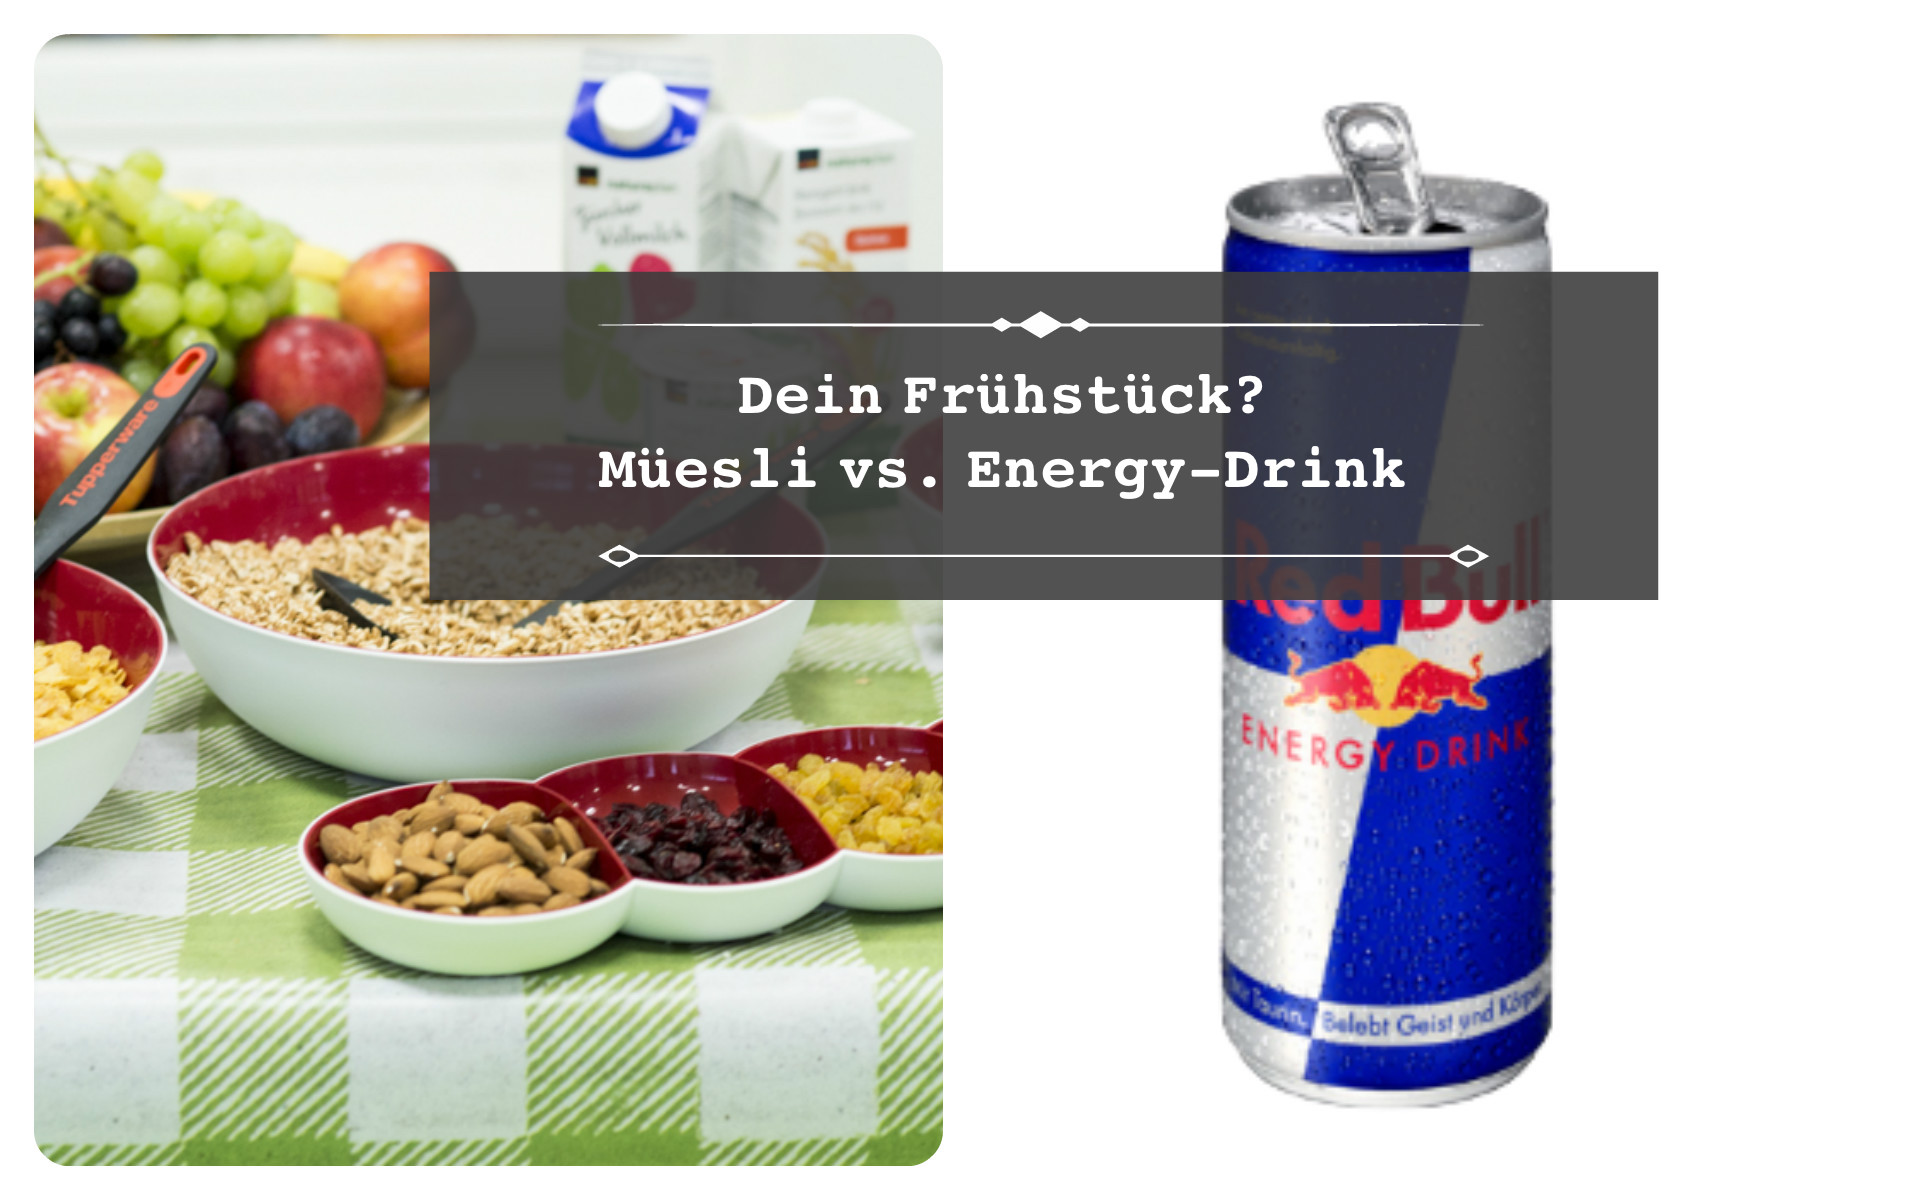 Müesli vs. Energy-Drink